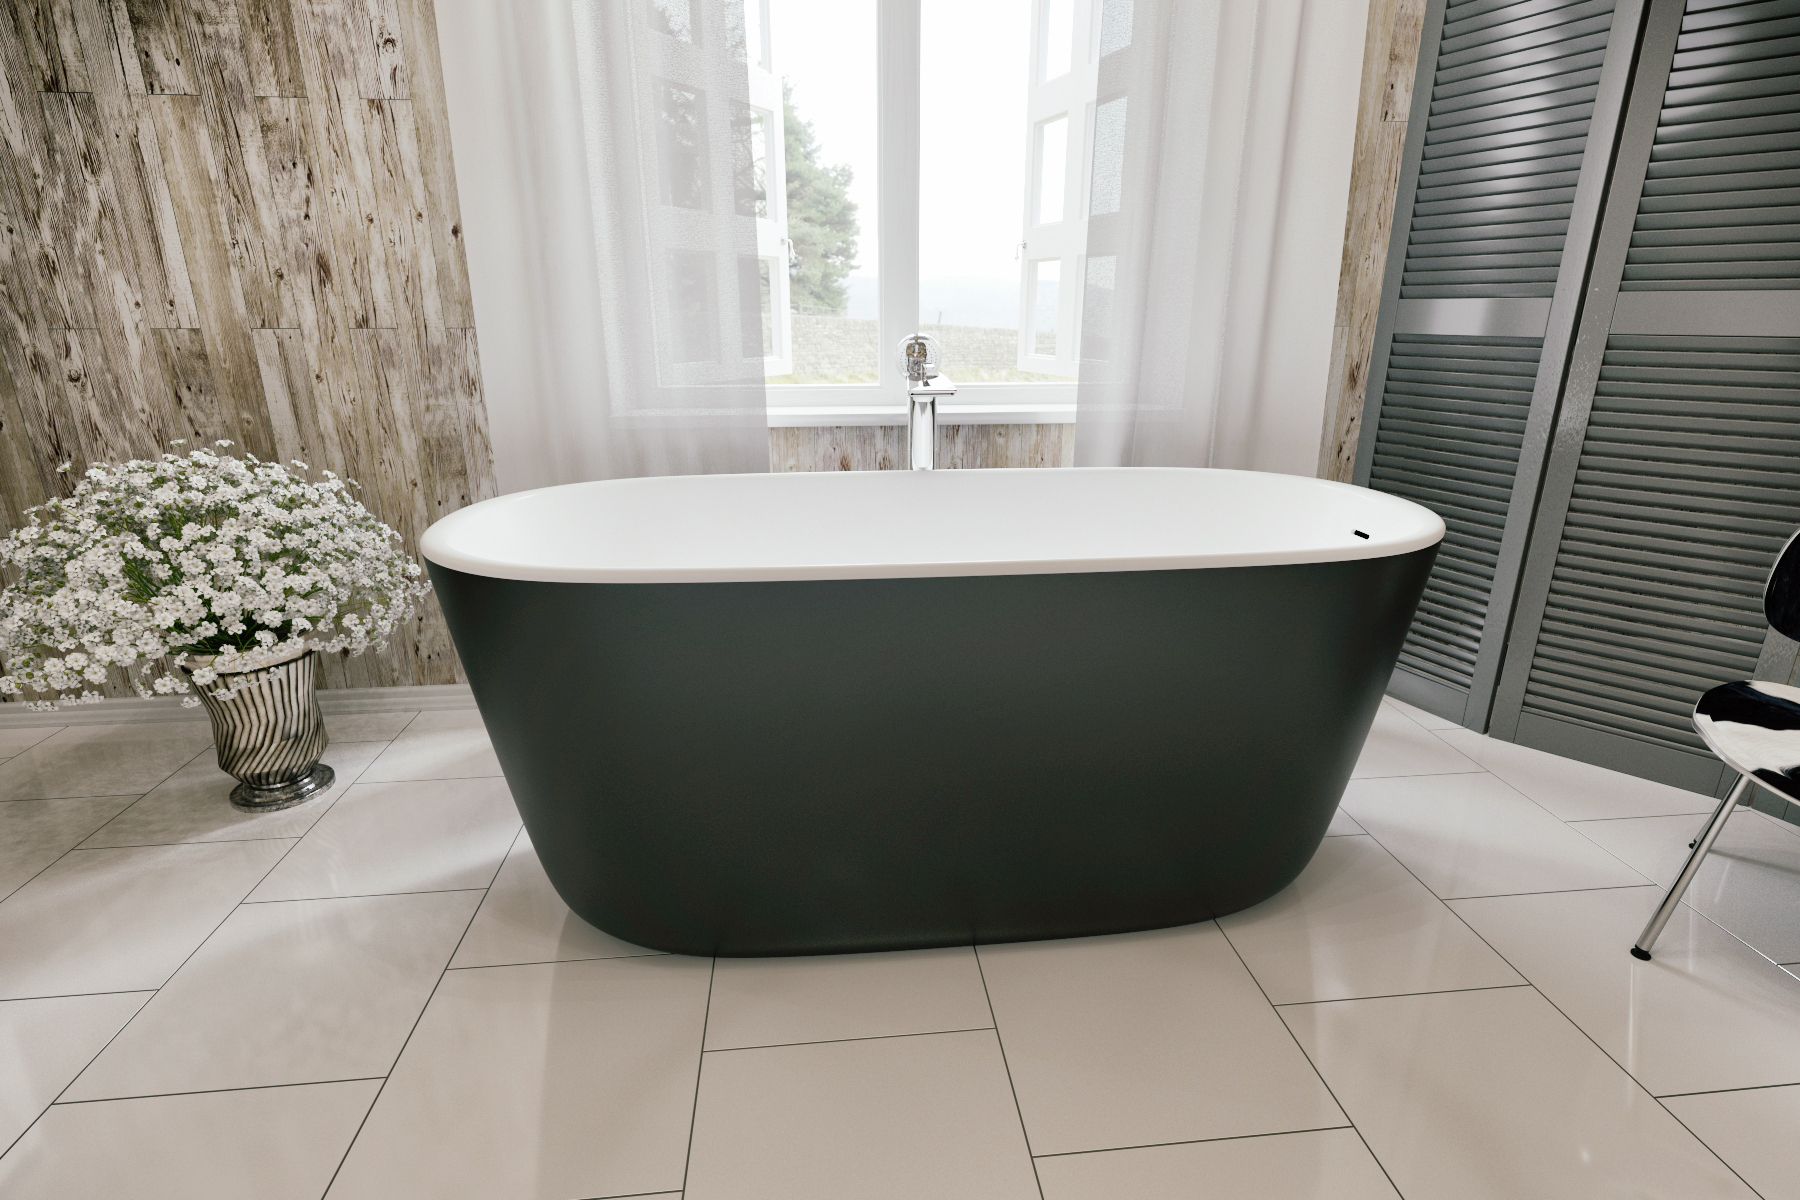 lullaby-blck-wht-freestanding-solid-surface-bathtub-by-aquatica-1